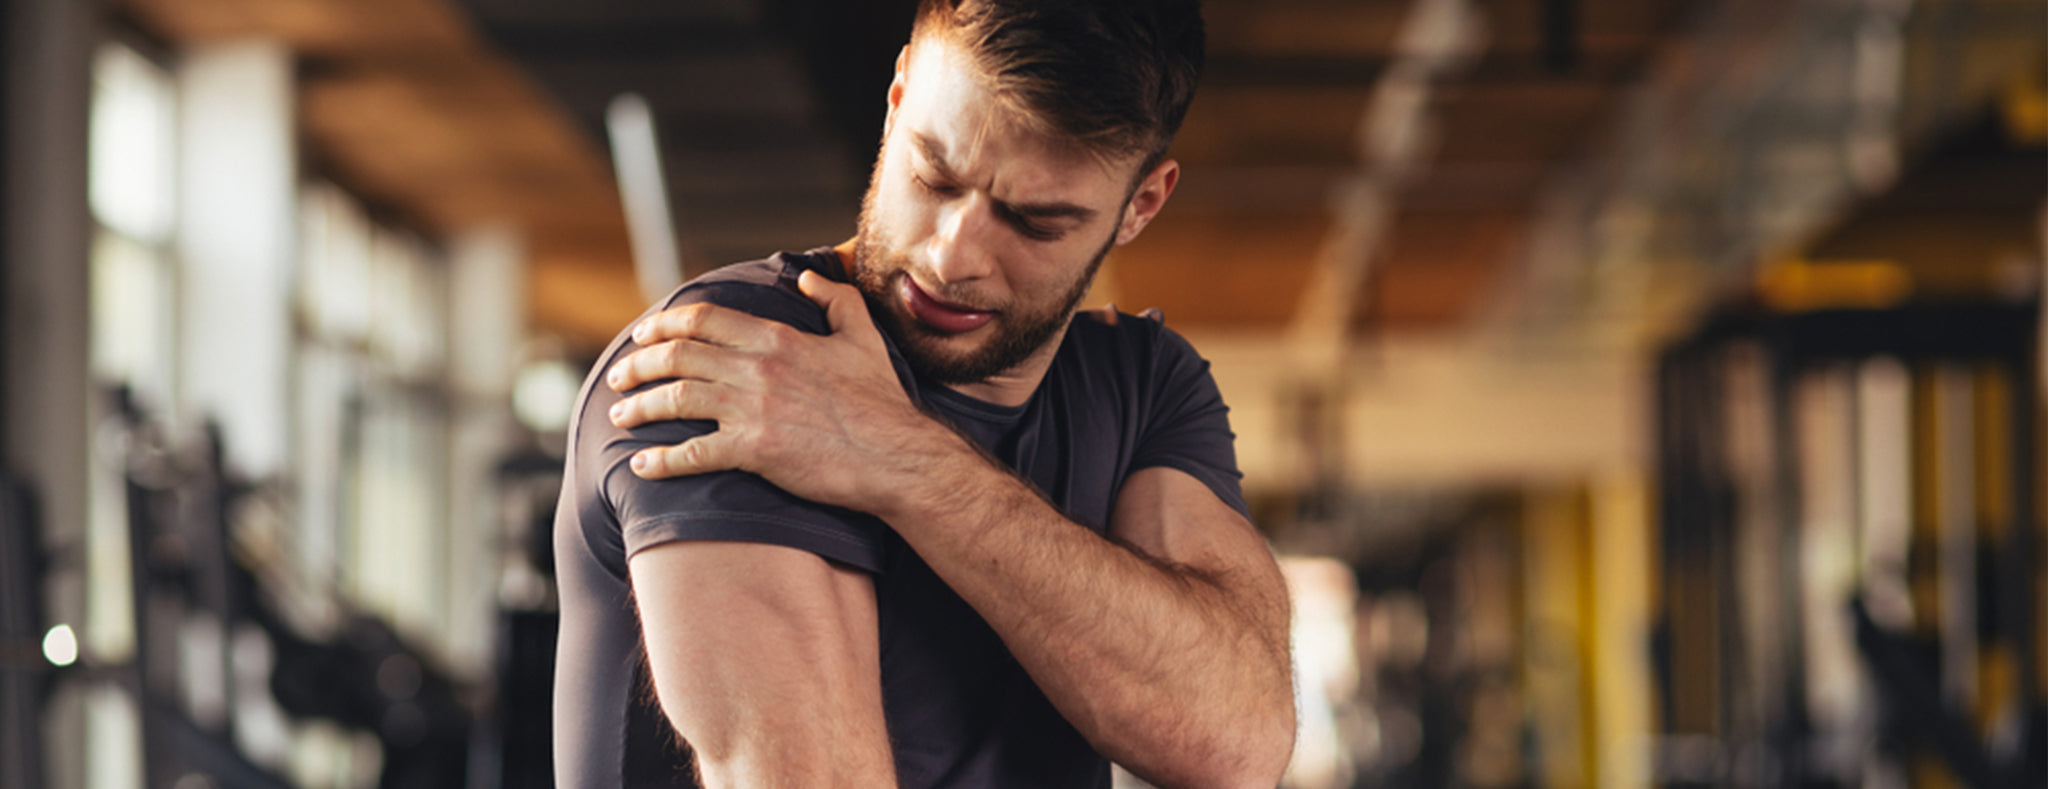 WHAT CAUSES MUSCLE SORENESS